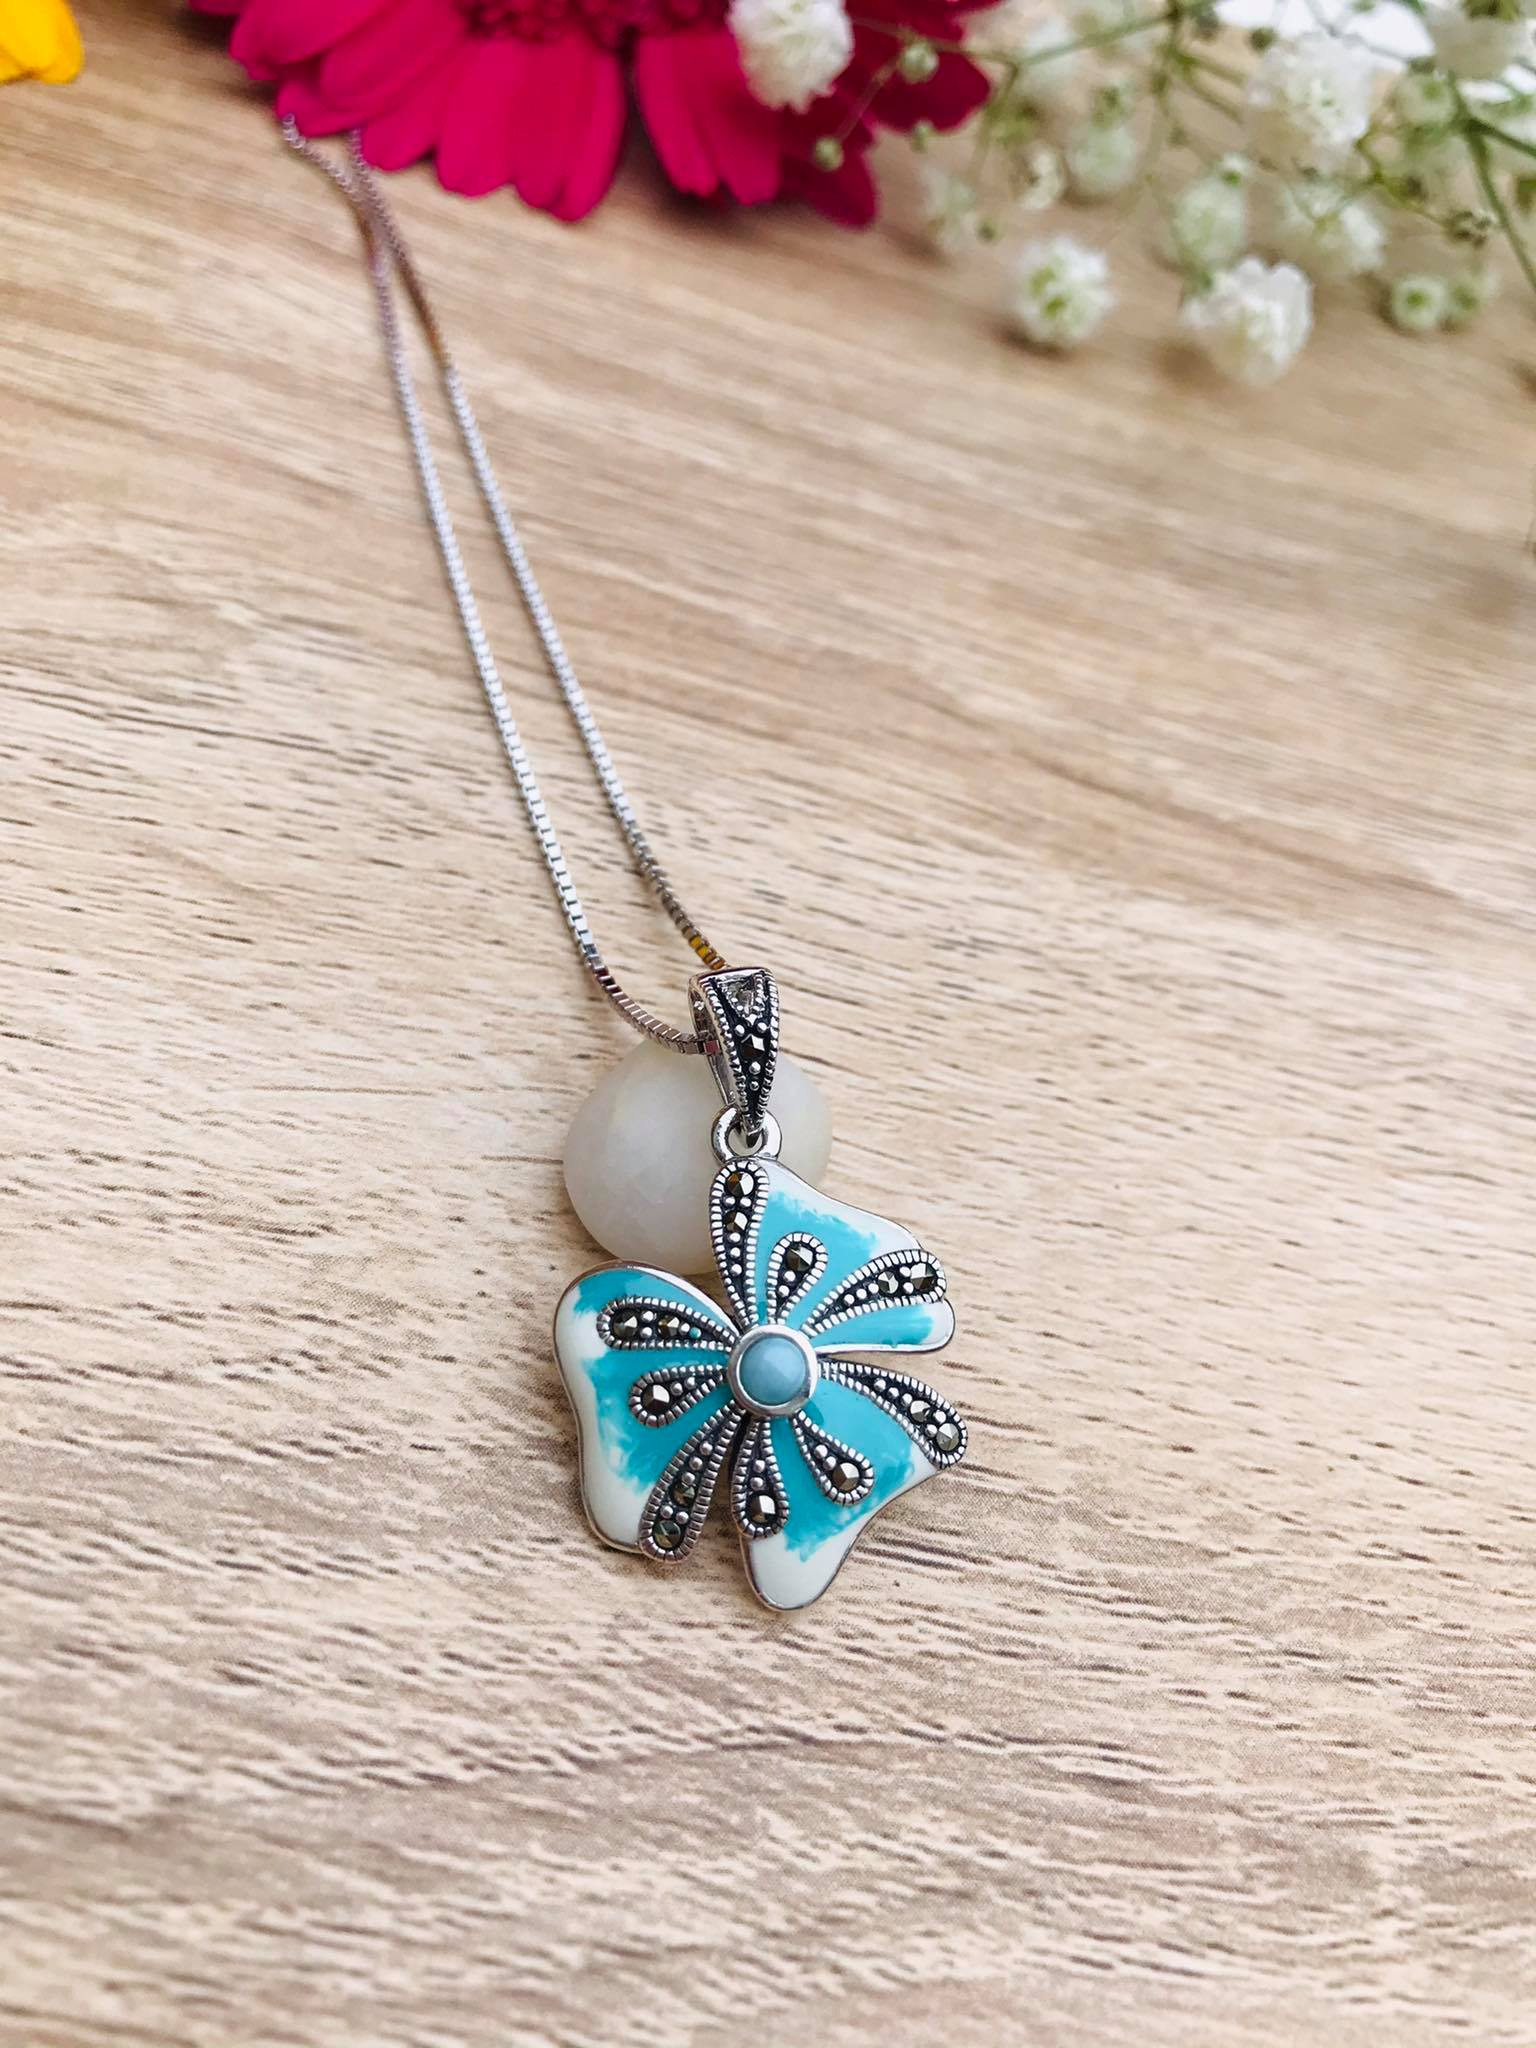 Stunning EnamelledSilver Necklace decorated with Swiss Marcasite and Larimar Image